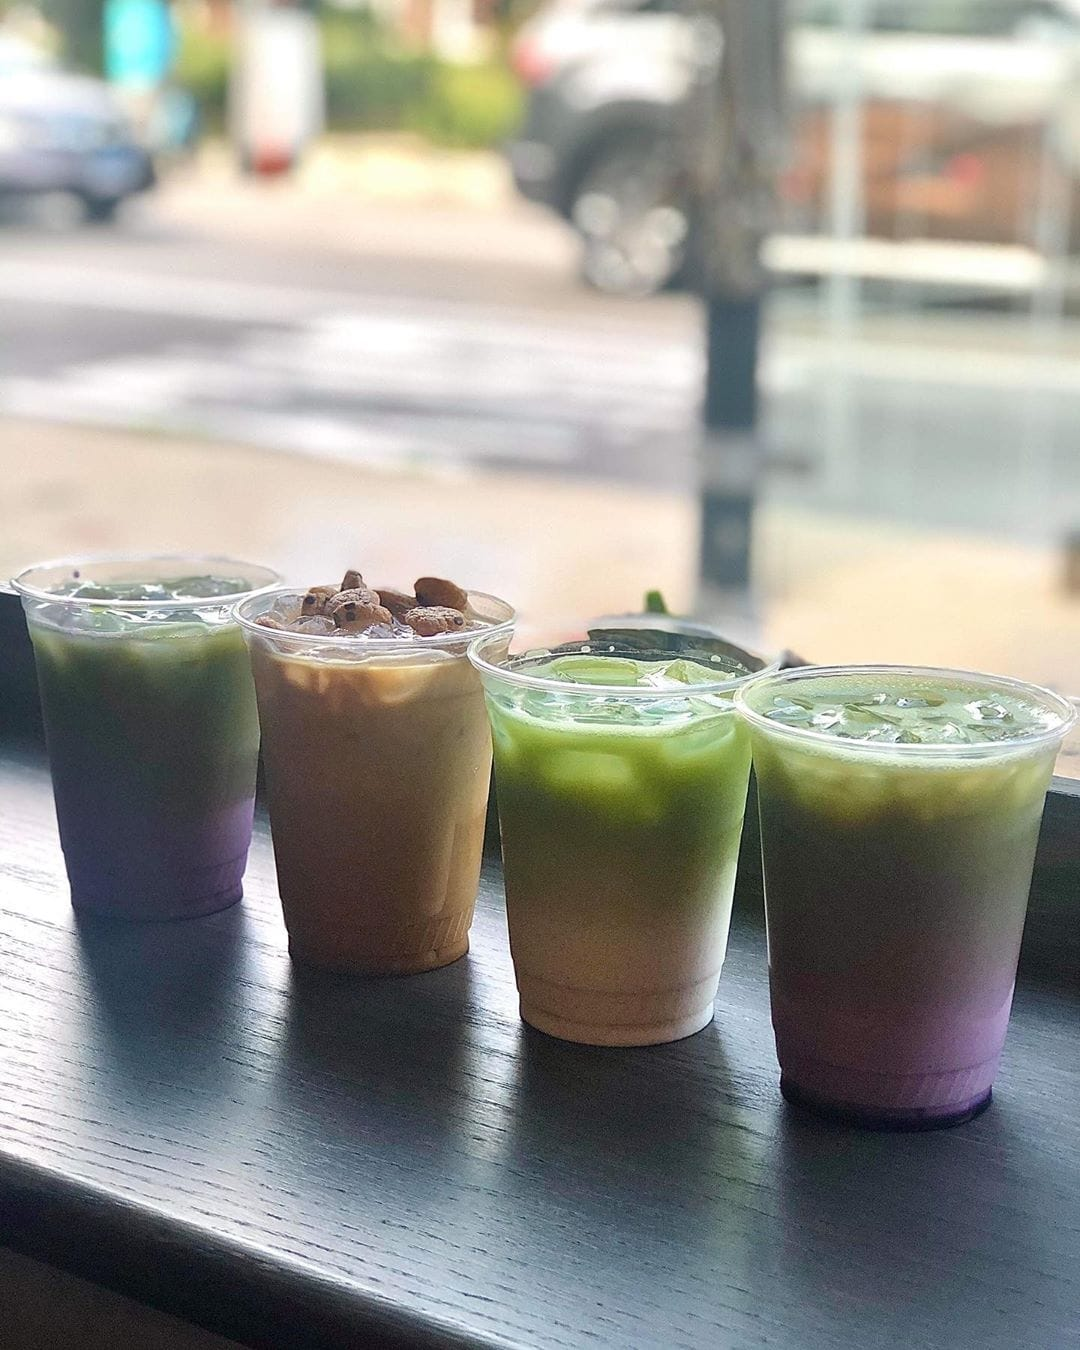 A picture of several colorful lattes